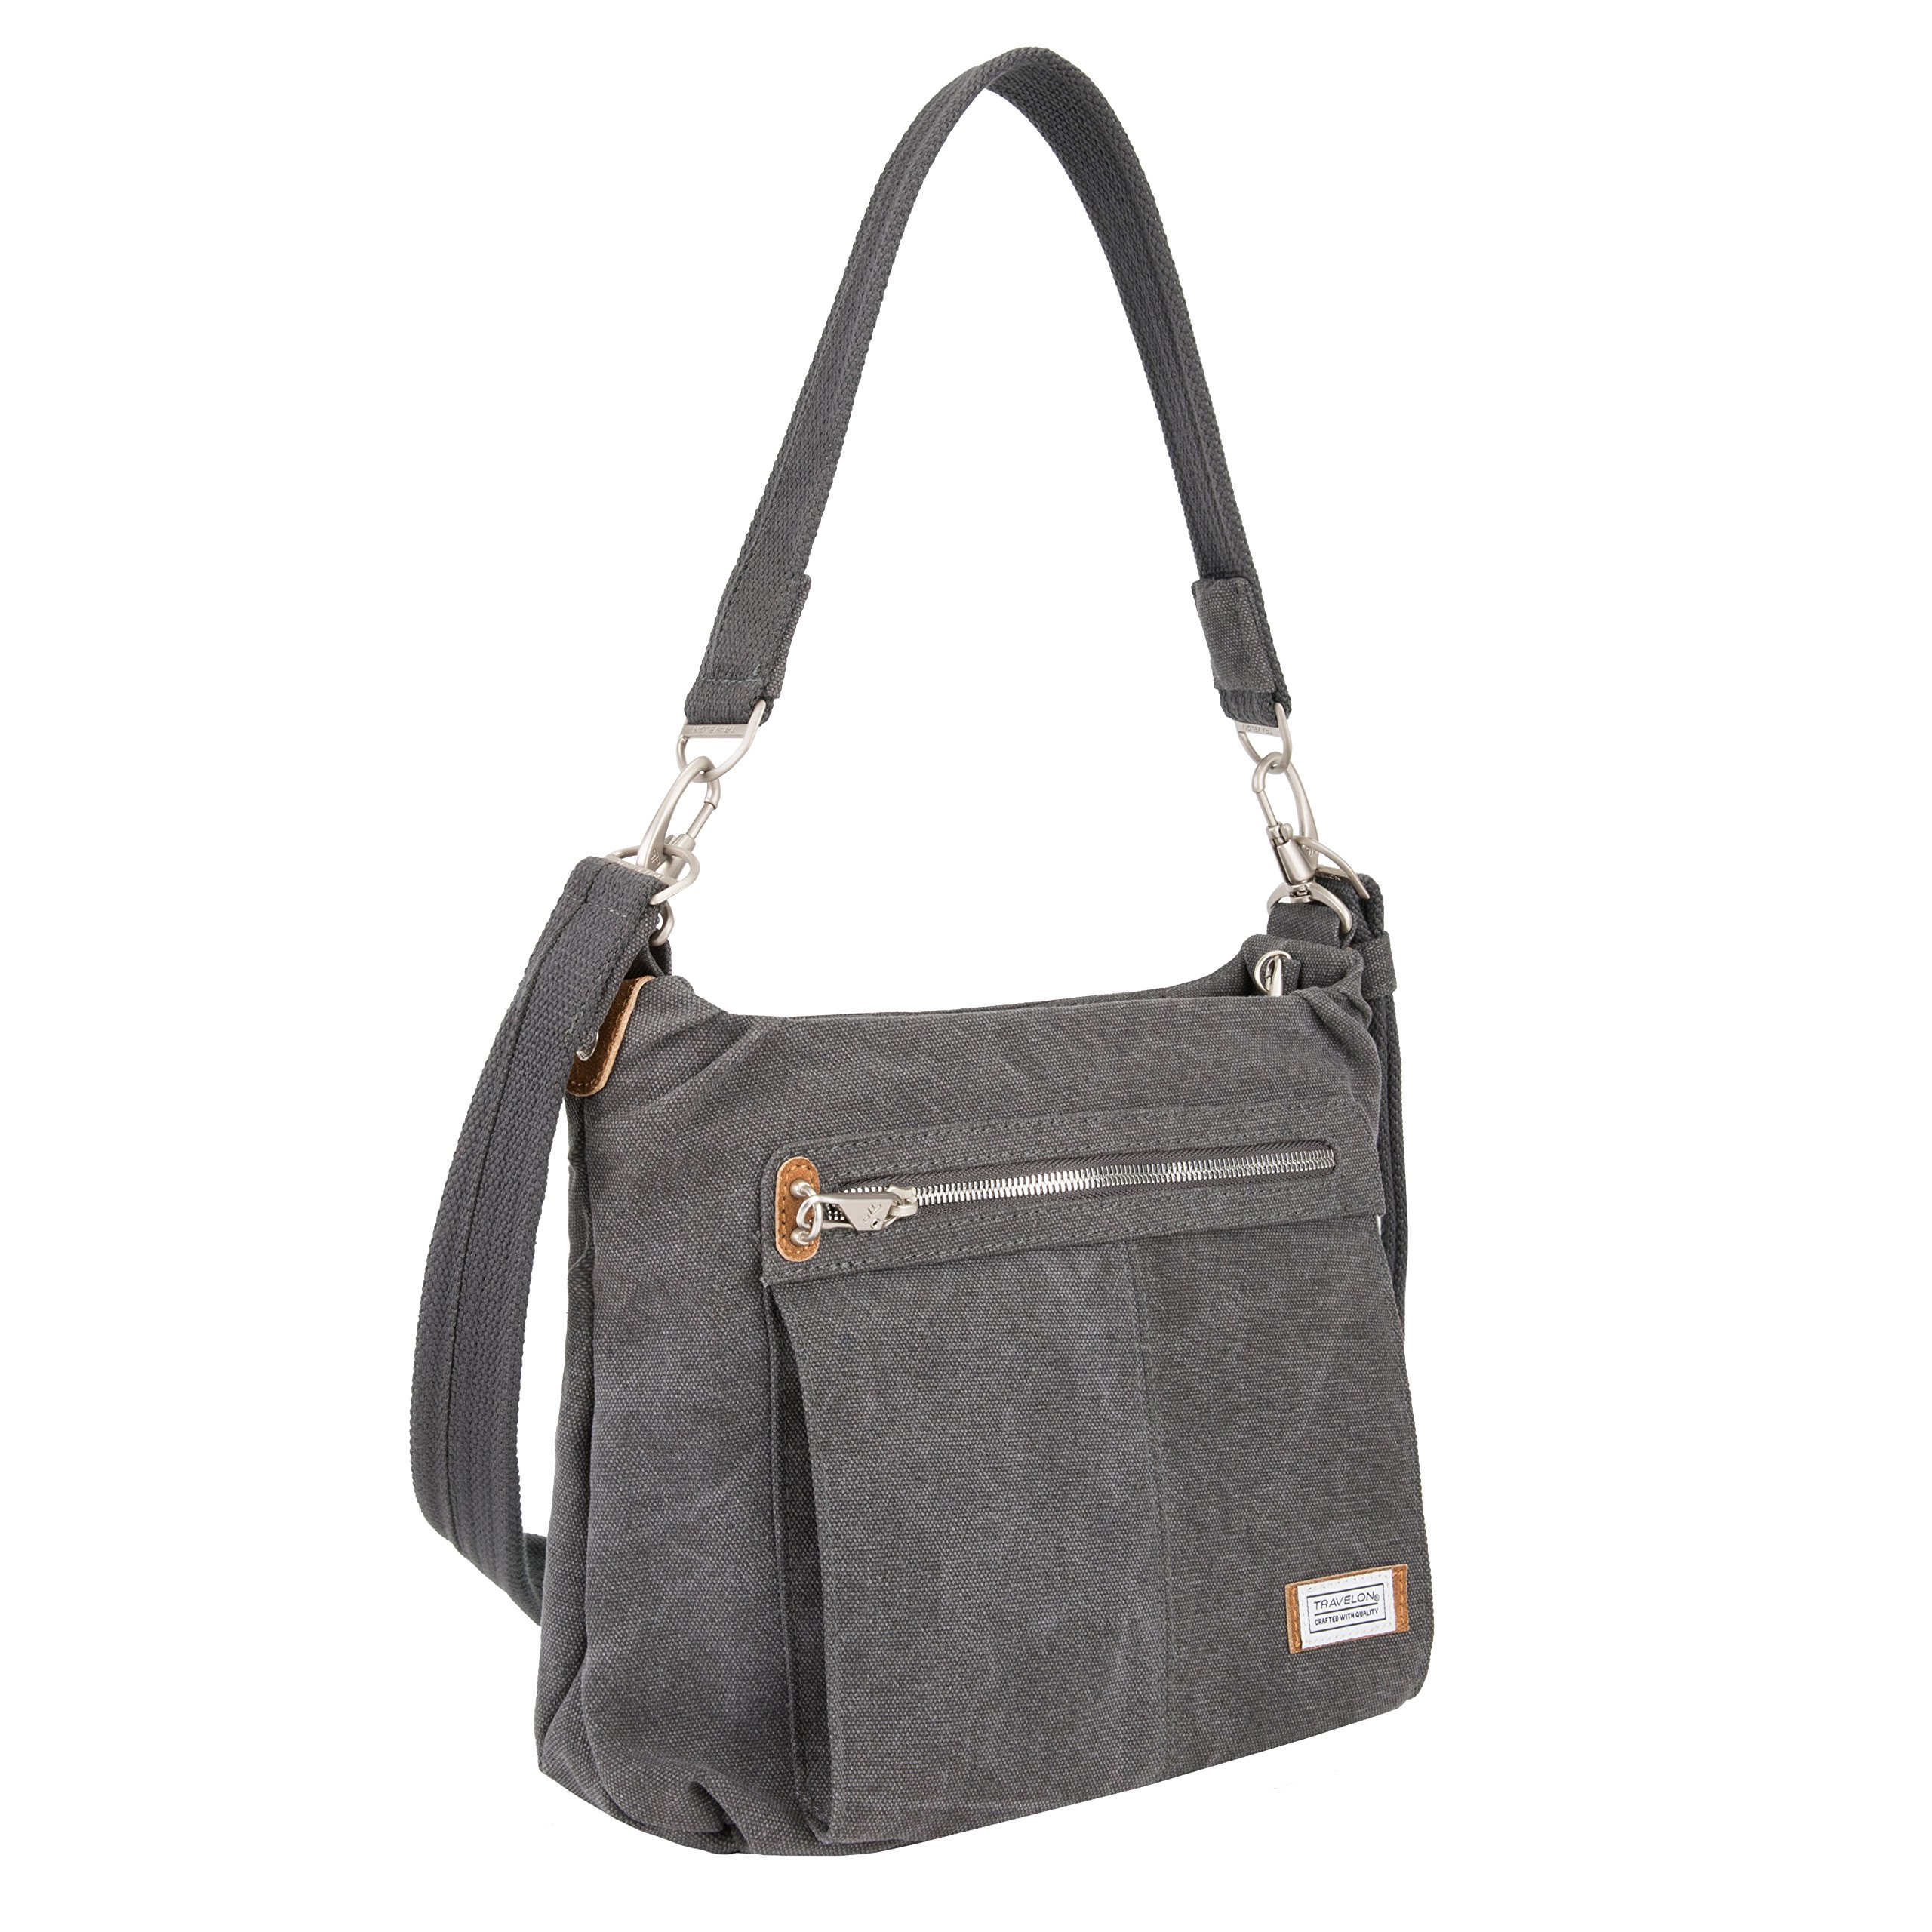 Travelon Anti-Theft Heritage Hobo Bag, Pewter by Travelon